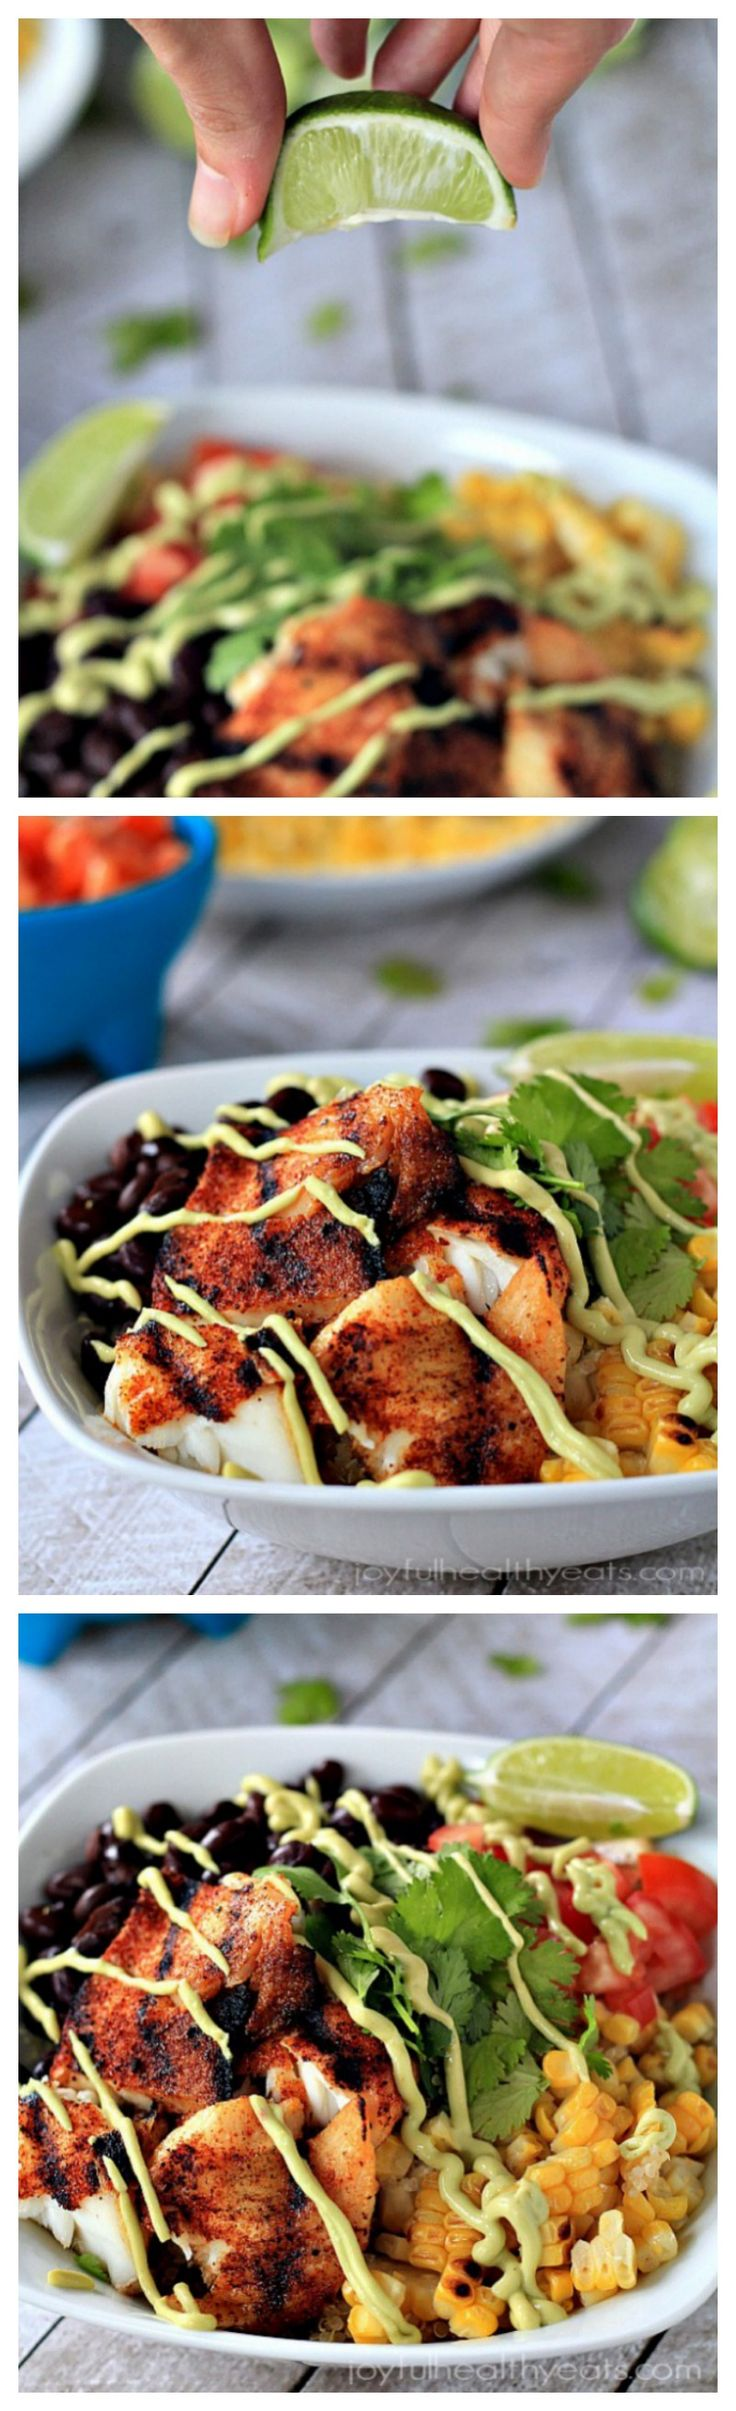 Grilled Tilapia Bowls with Chipotle Avocado Crema, Gluten Free and done in 30 minutes! | www.joyfulhealthyeats.com